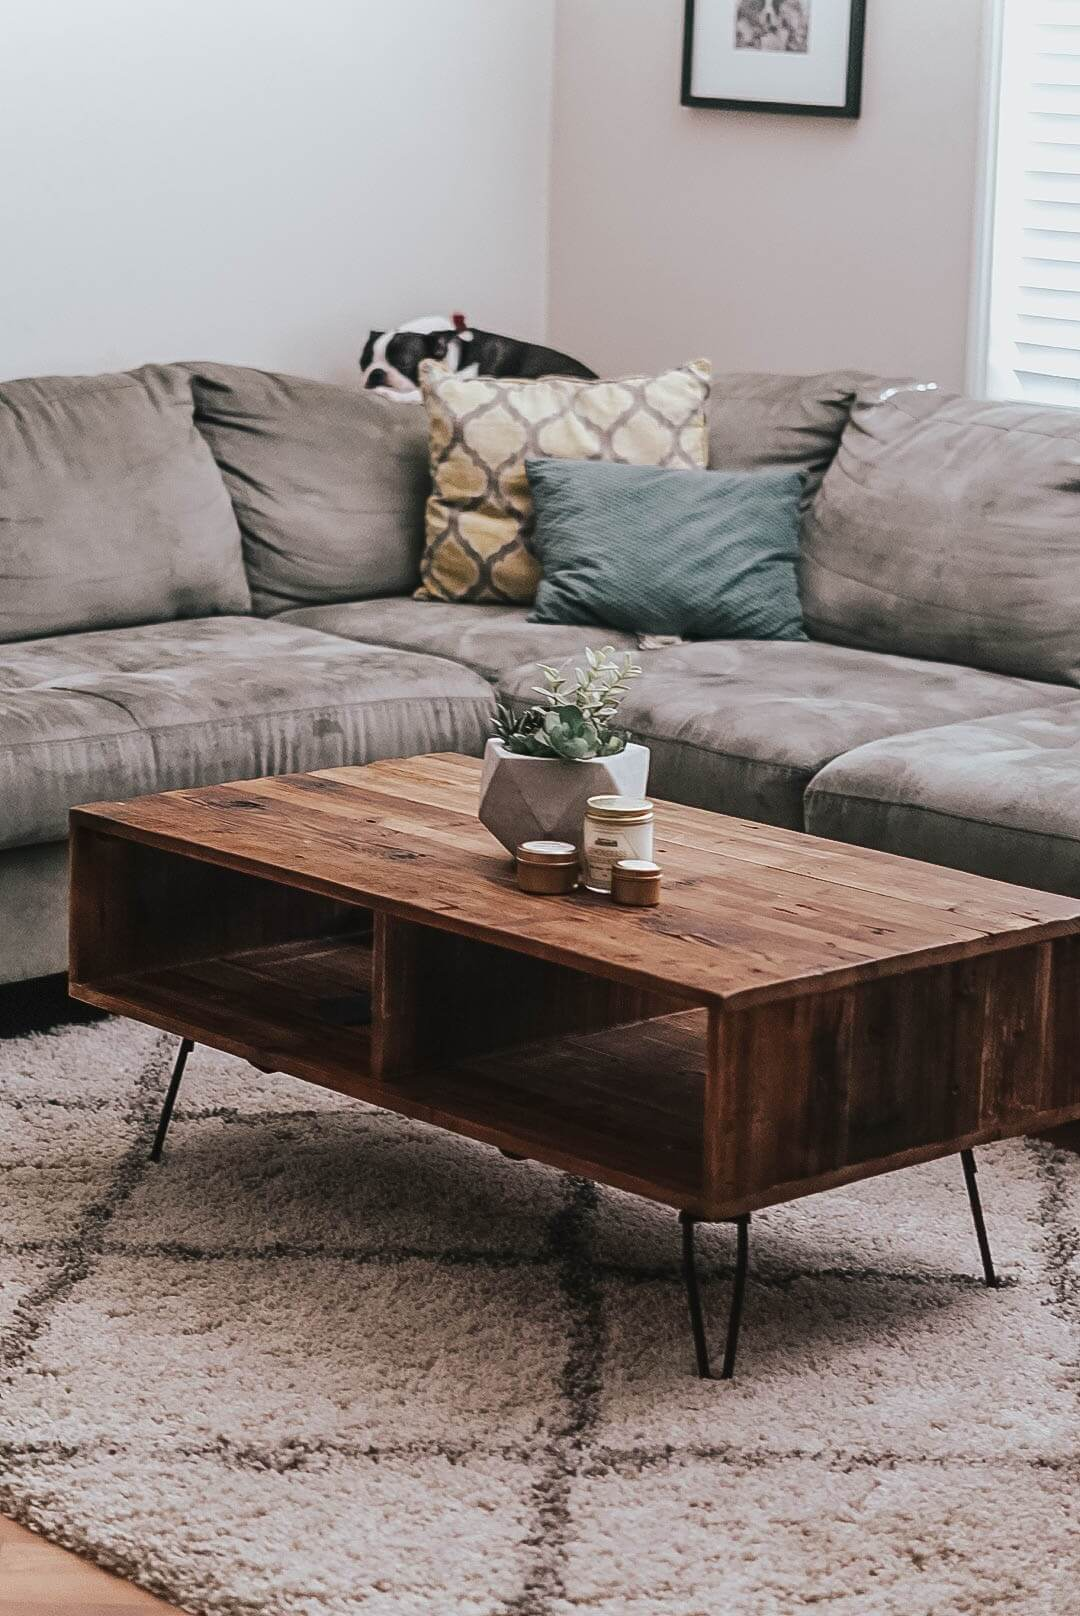 5 Best Rustic Living Room Furniture Ideas and Designs for 5